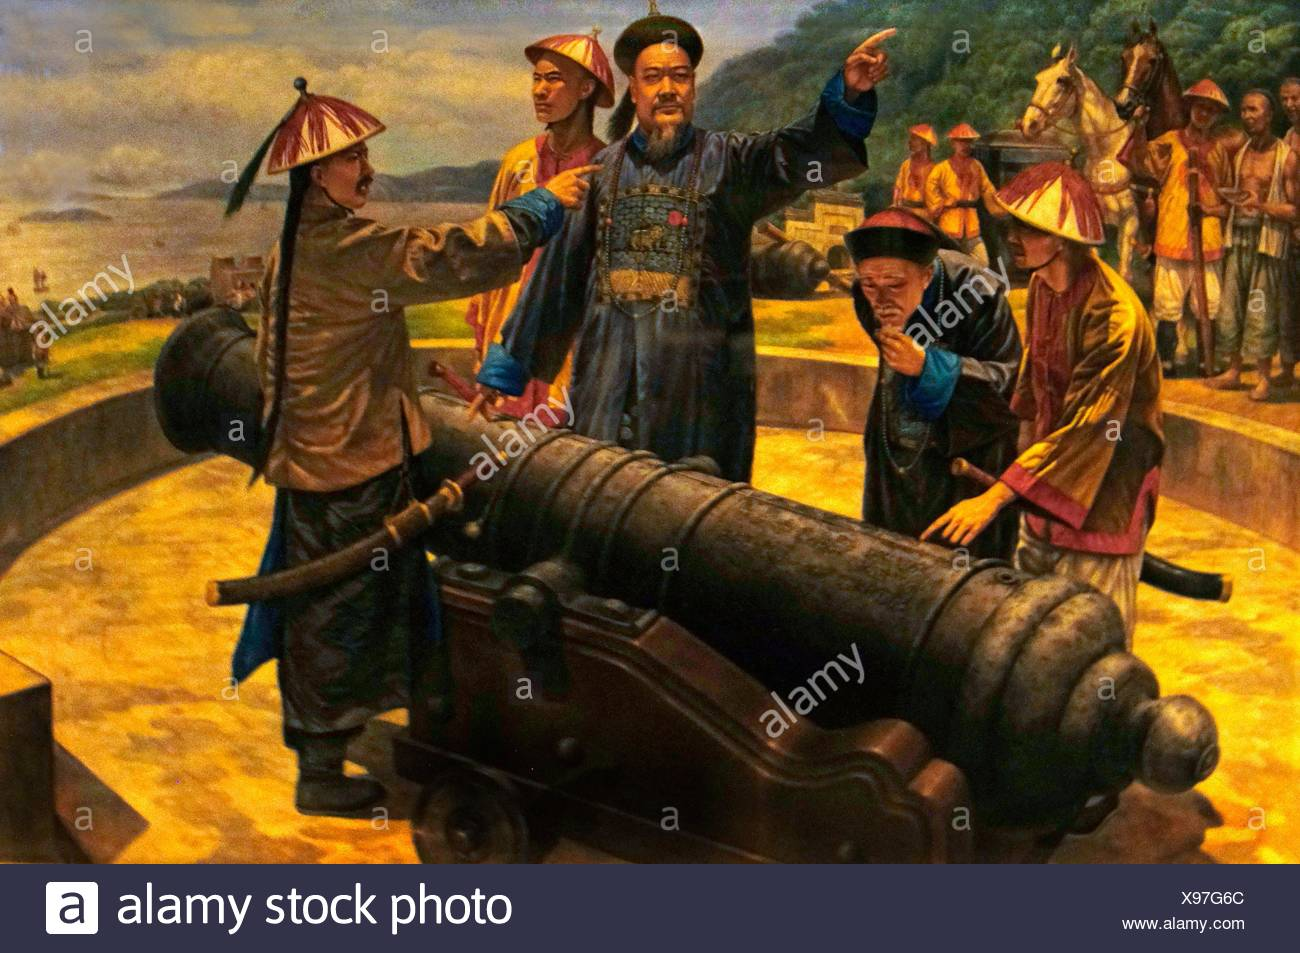 1800s 1840 19th century Asia Bogue Boops boops cannon China coastal color image commander defence Deng drawing firearm general - Stock Image